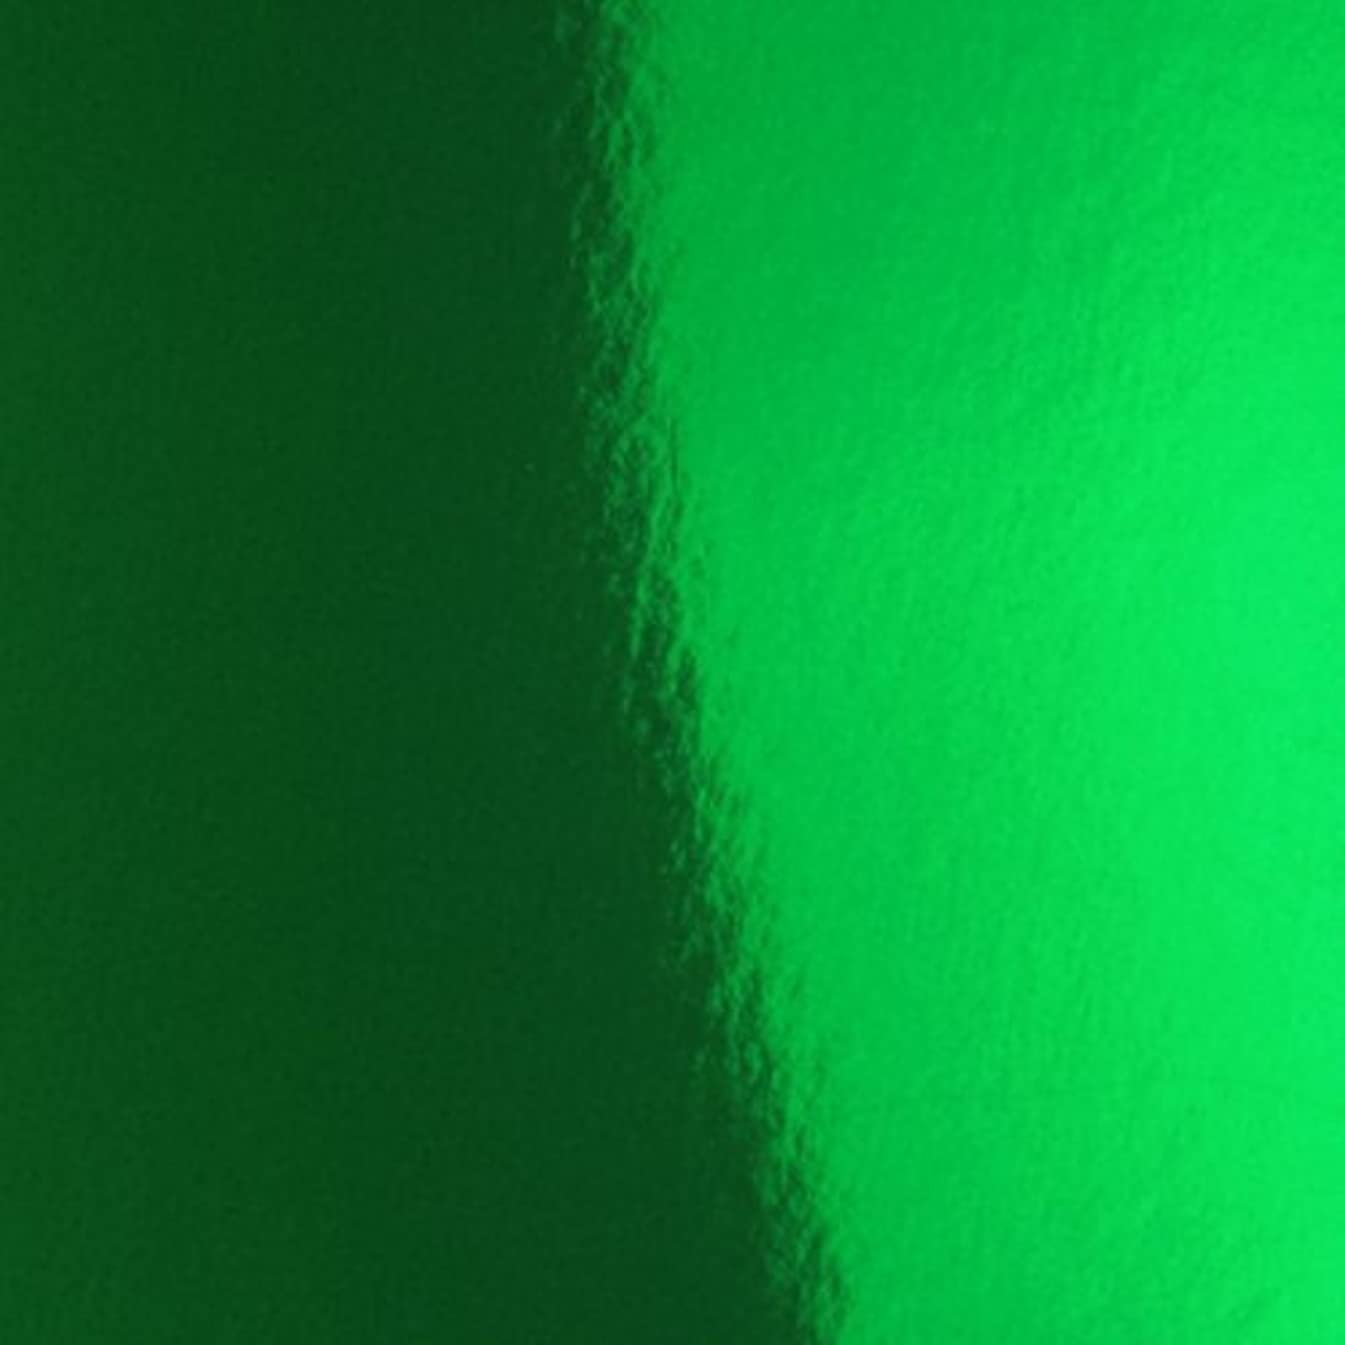 Hygloss Products Mirror Board Sheets - For Arts and Crafts, 12 x 12 in, Green, 10 Pack